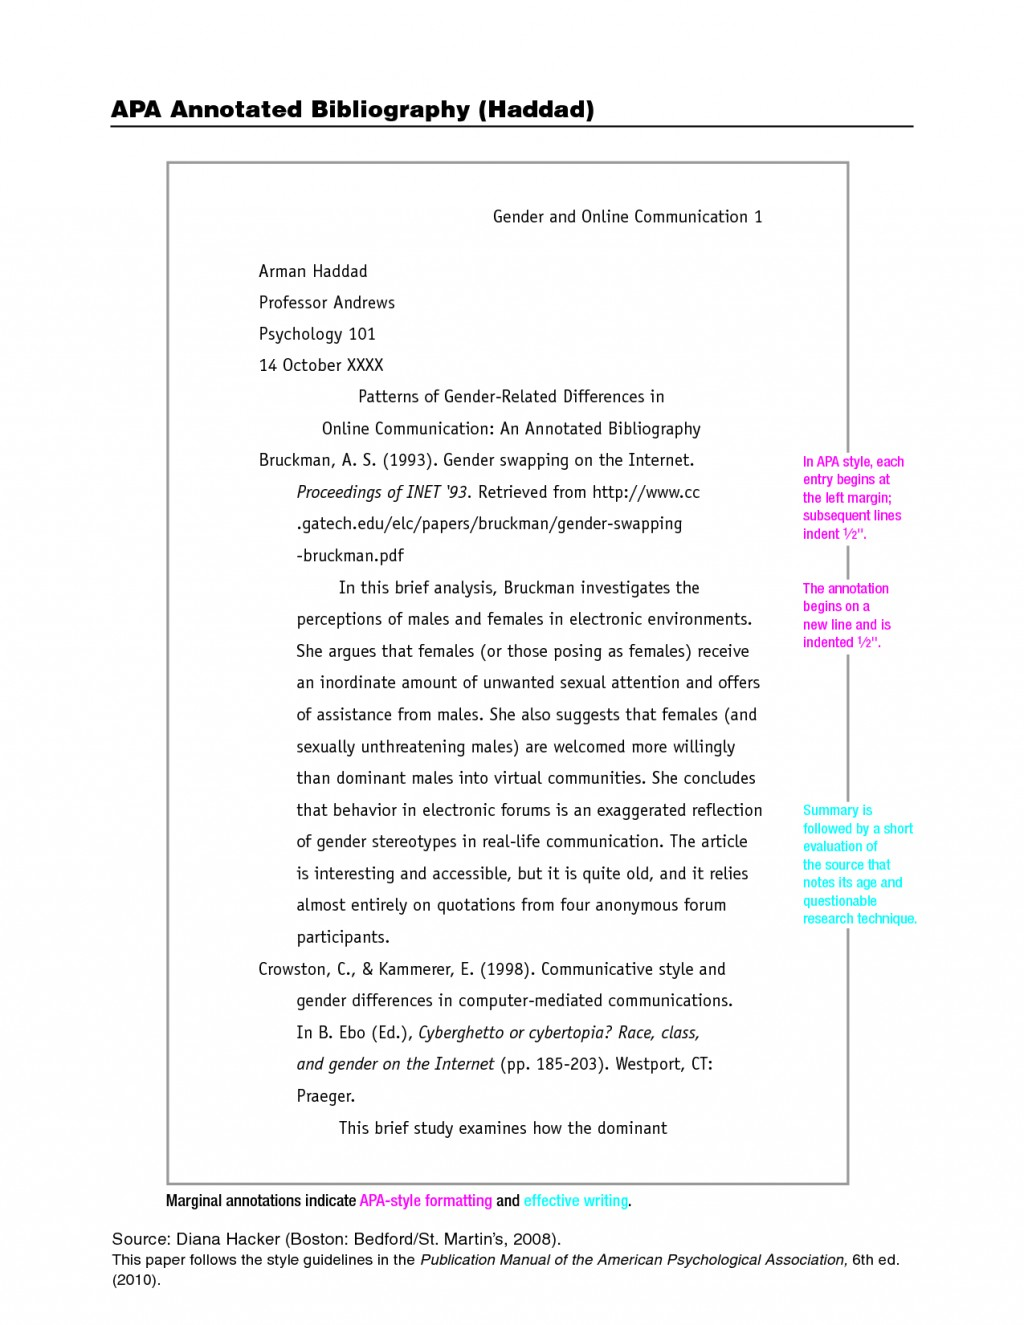 011 Apa Paper Template Si6pk8fz Essay Style Amazing Answer Harvard Format Guide Large